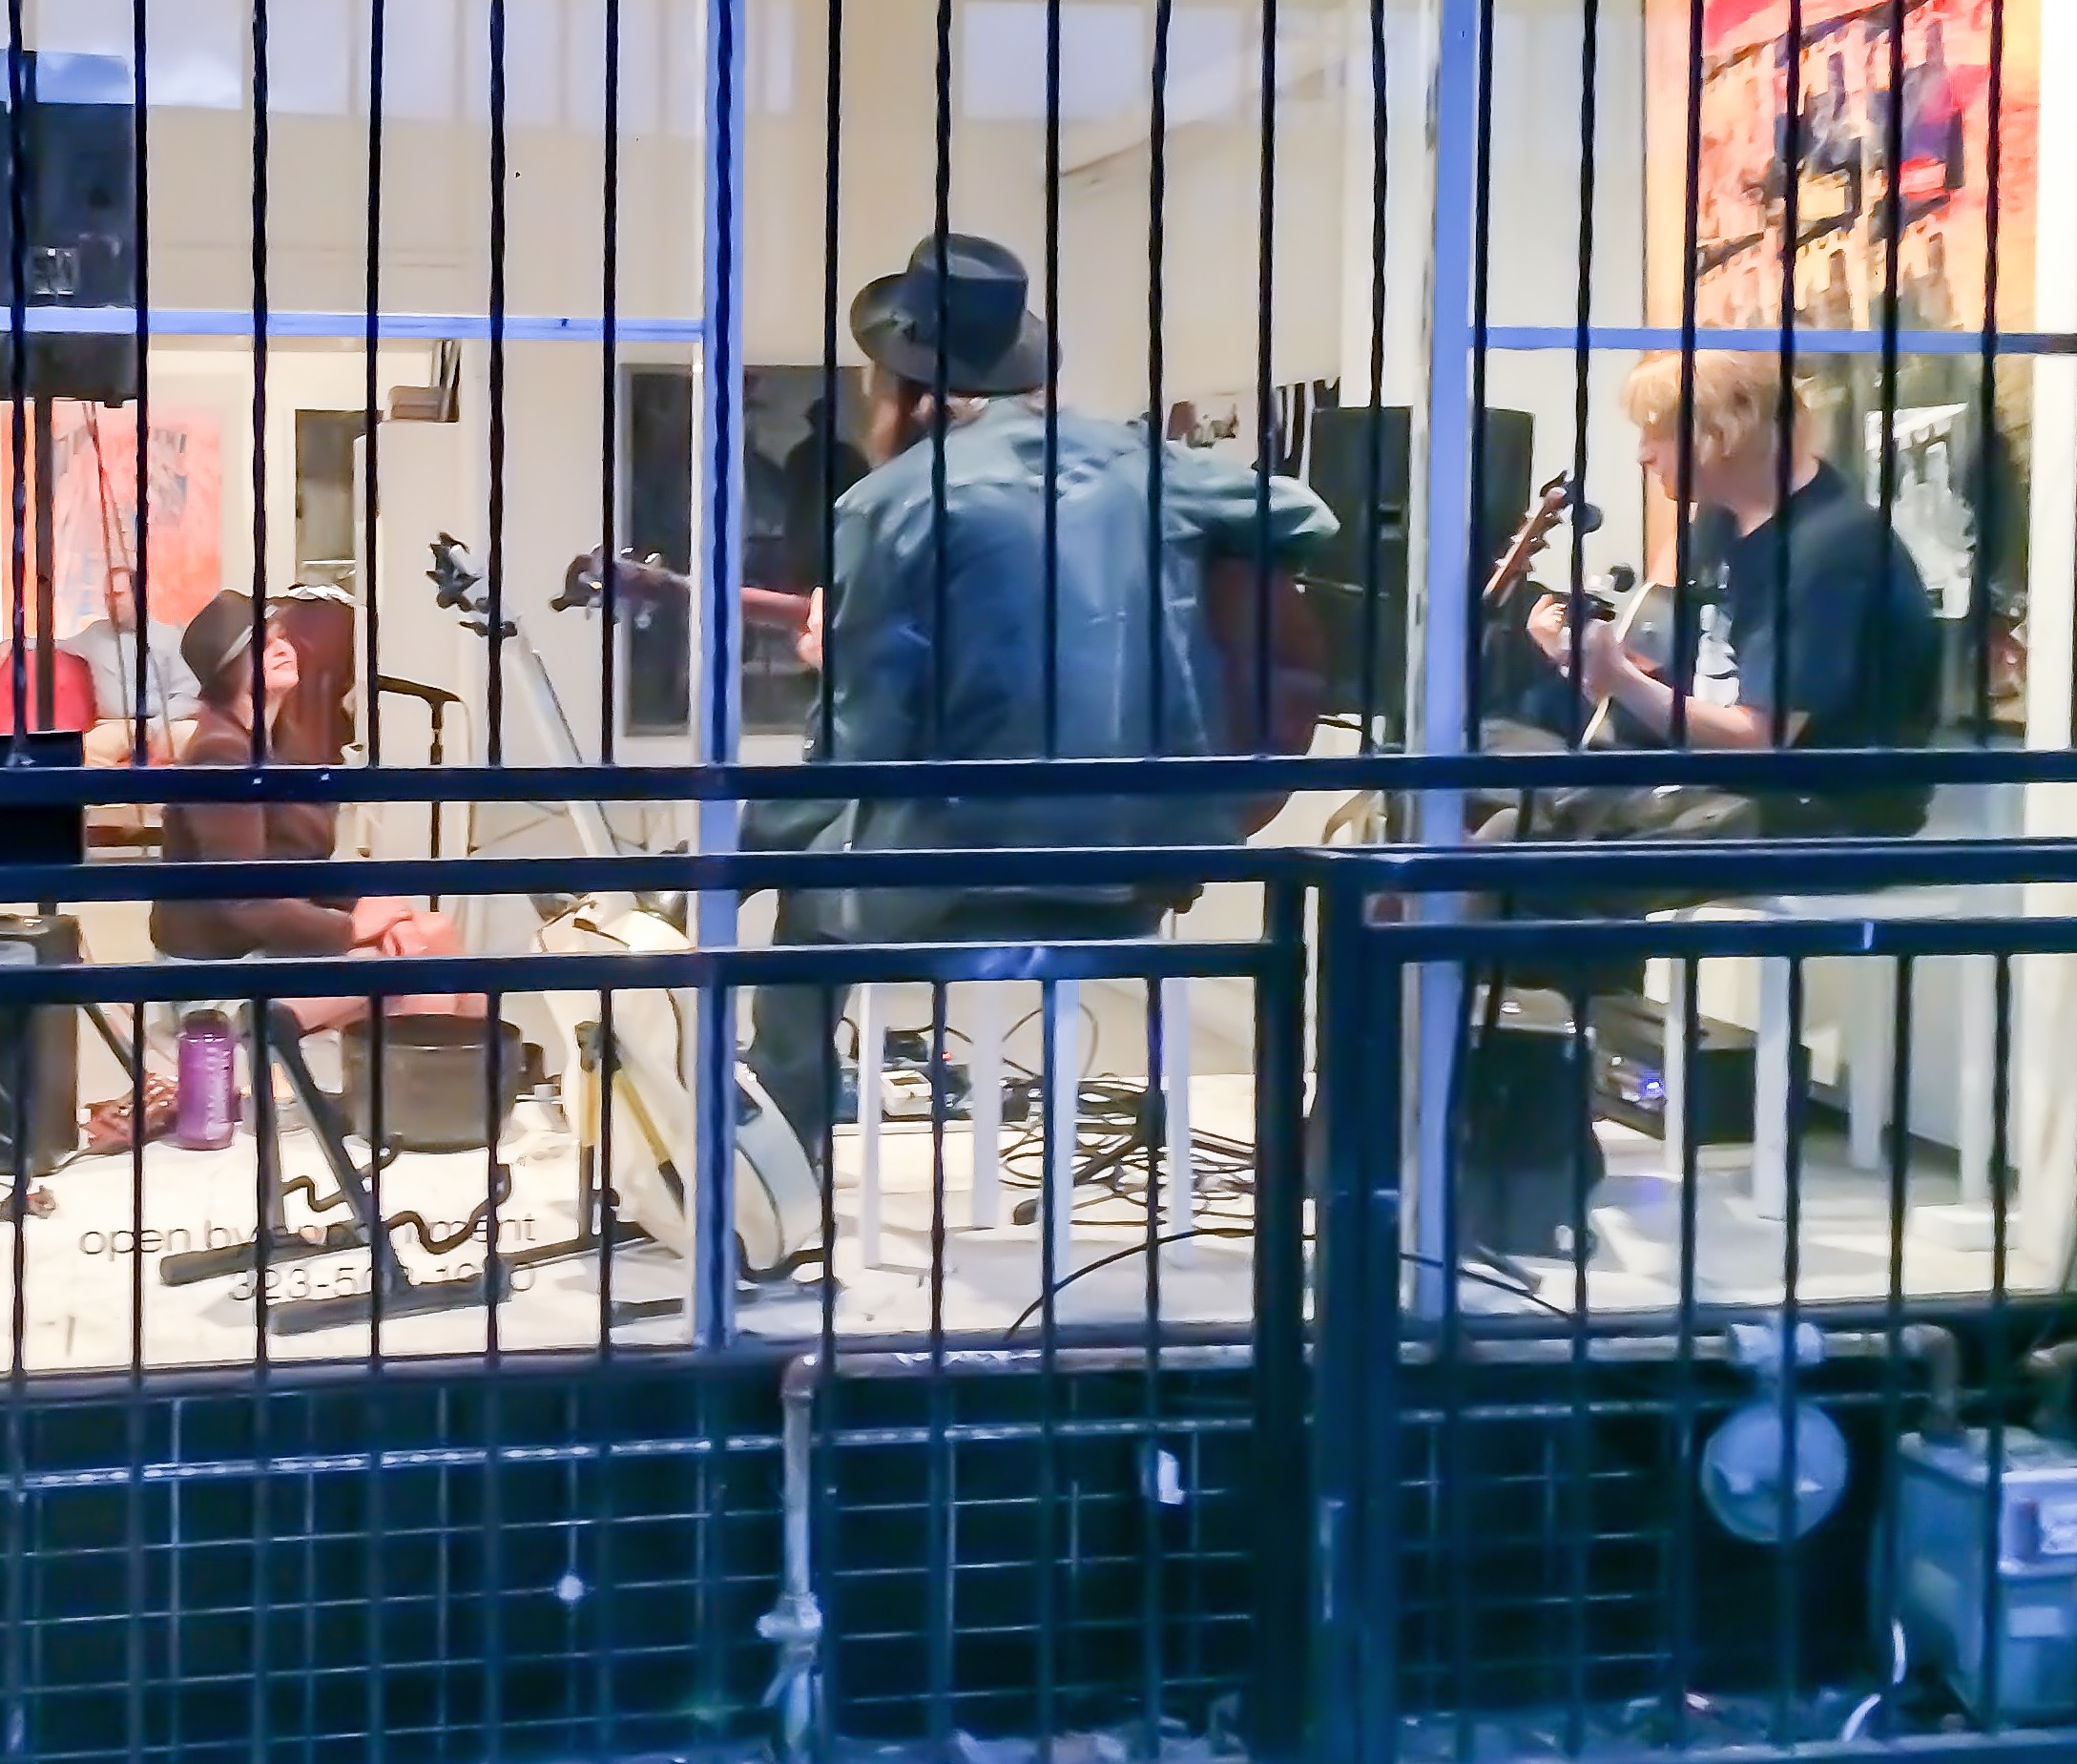 Music at galleryGOMEZ